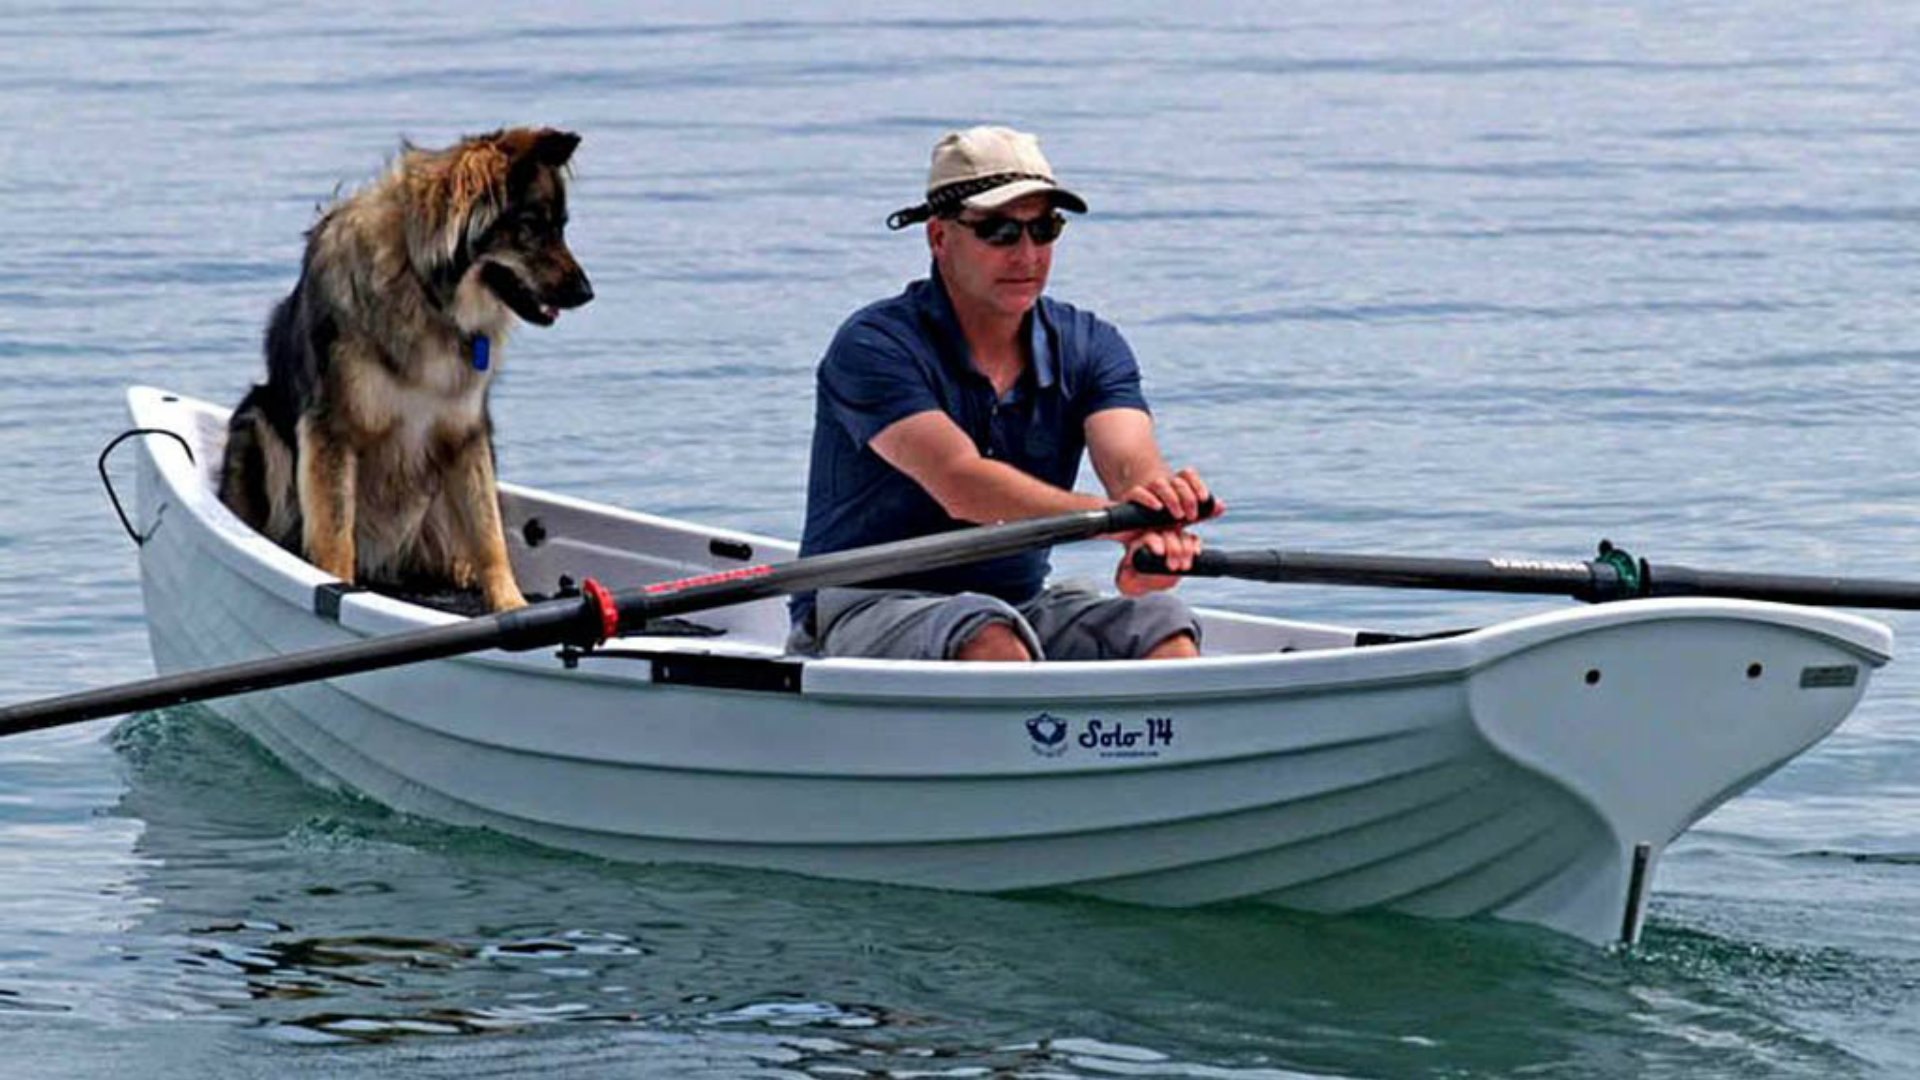 Whitehall-Solo-Row-Rowing-Dogs-Water-Outdoors